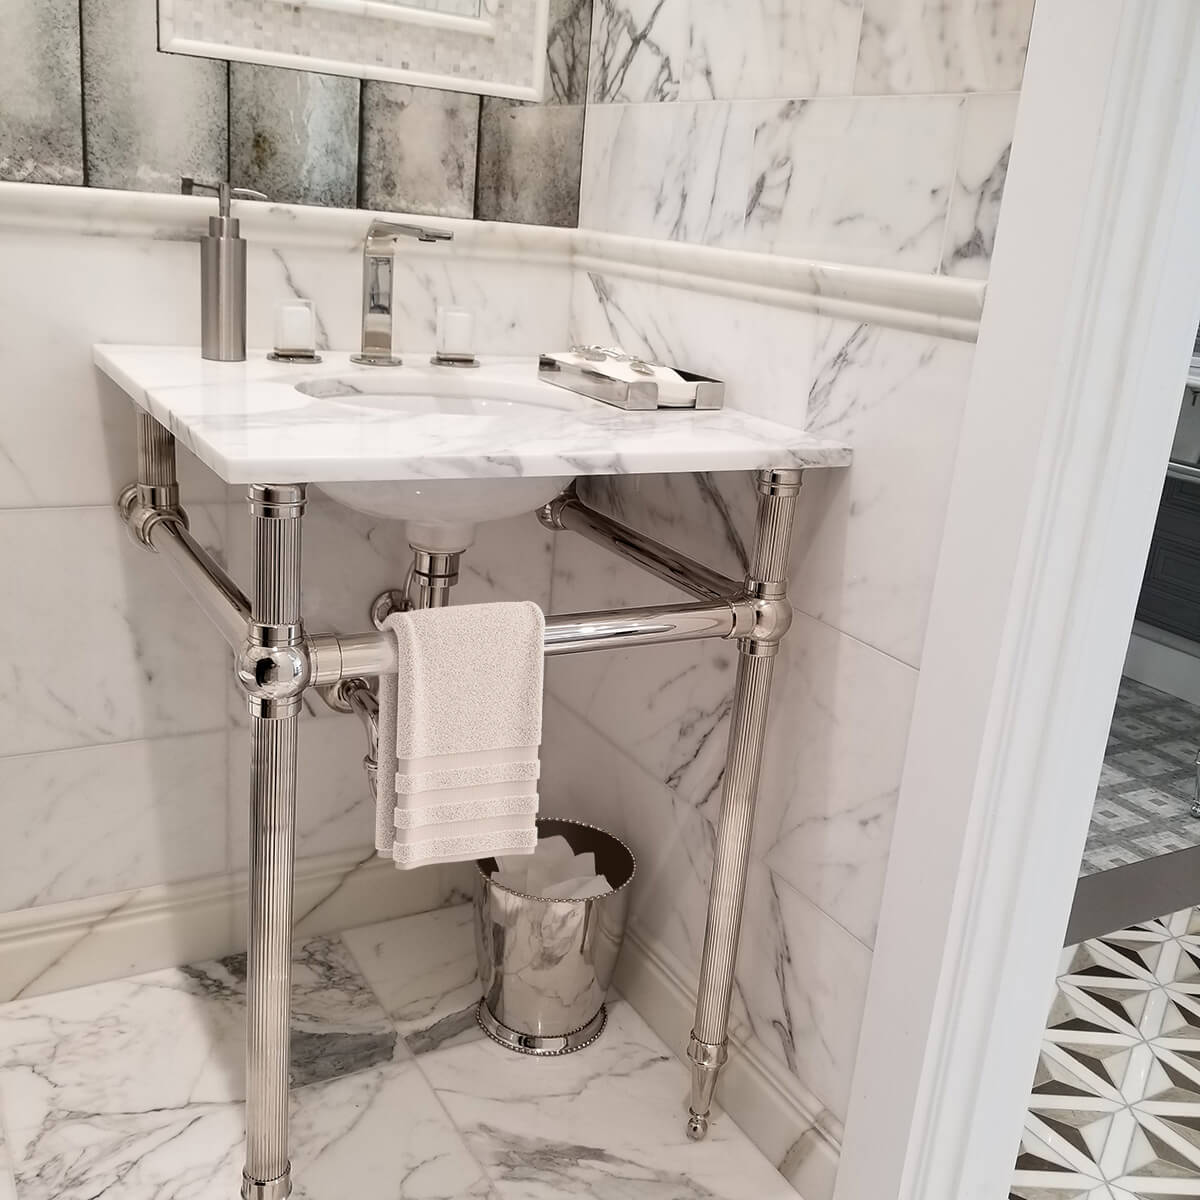 1281-Atristic Tile LS2T Reeded in Marble Bath